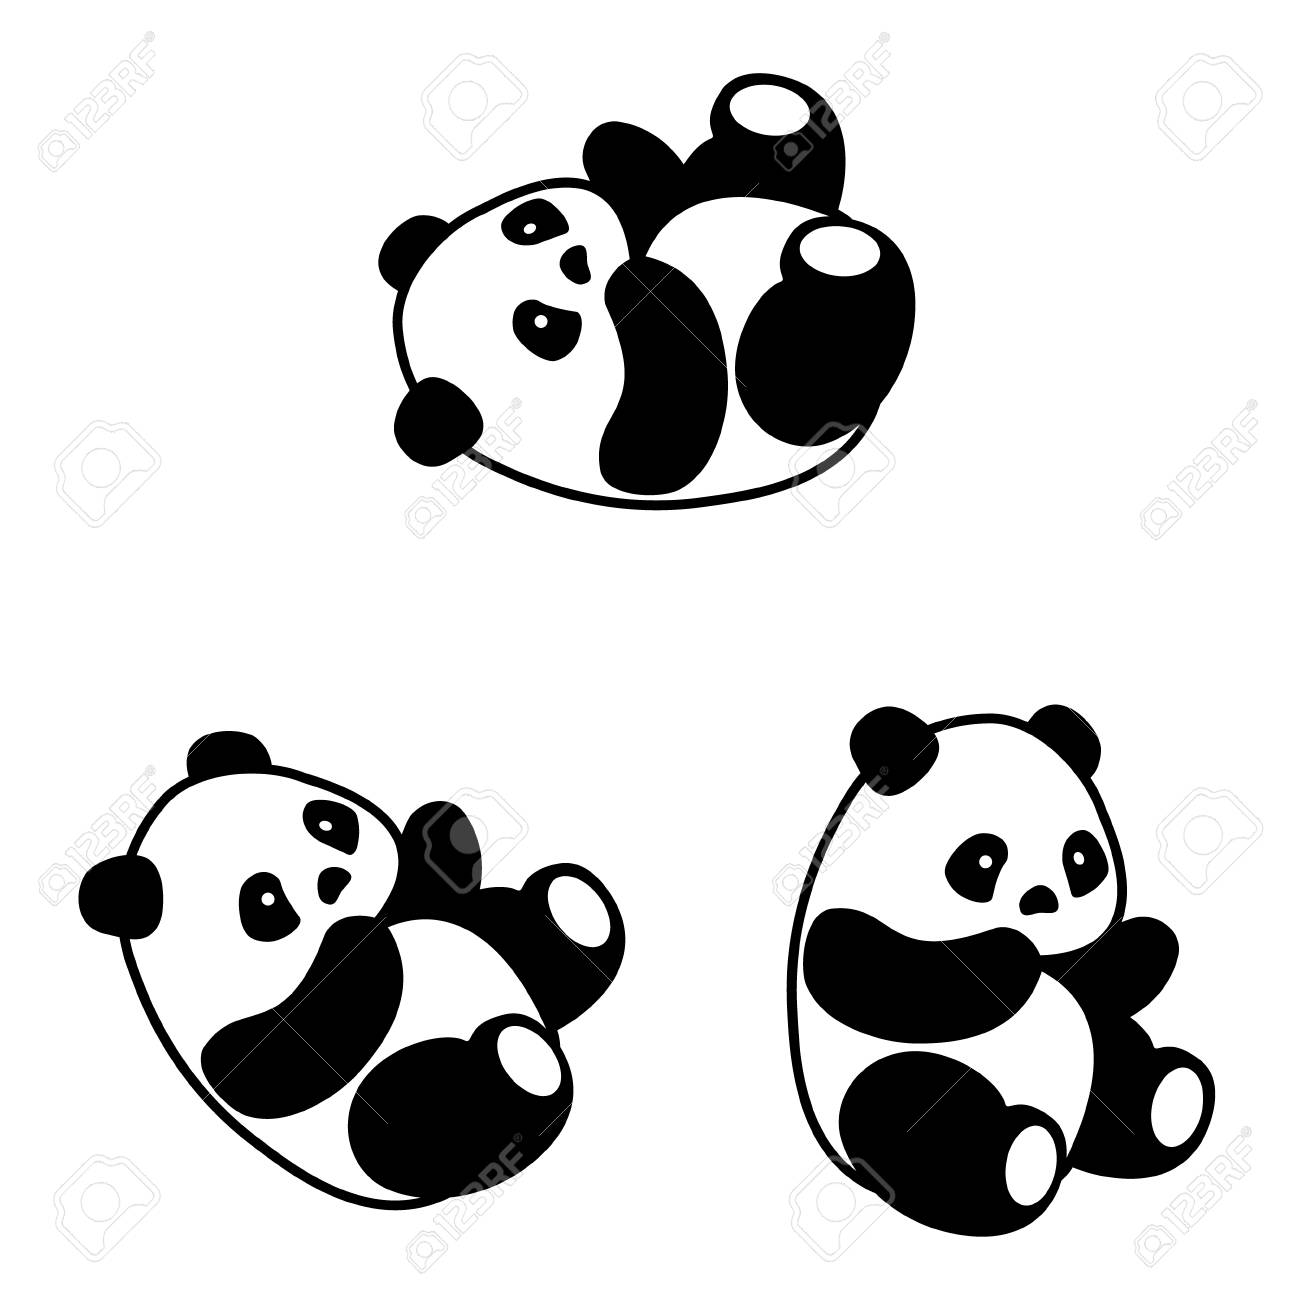 Raster Illustration Cute Cartoon Asian Panda Bear Set Collection Stock Photo Picture And Royalty Free Image Image 81223340